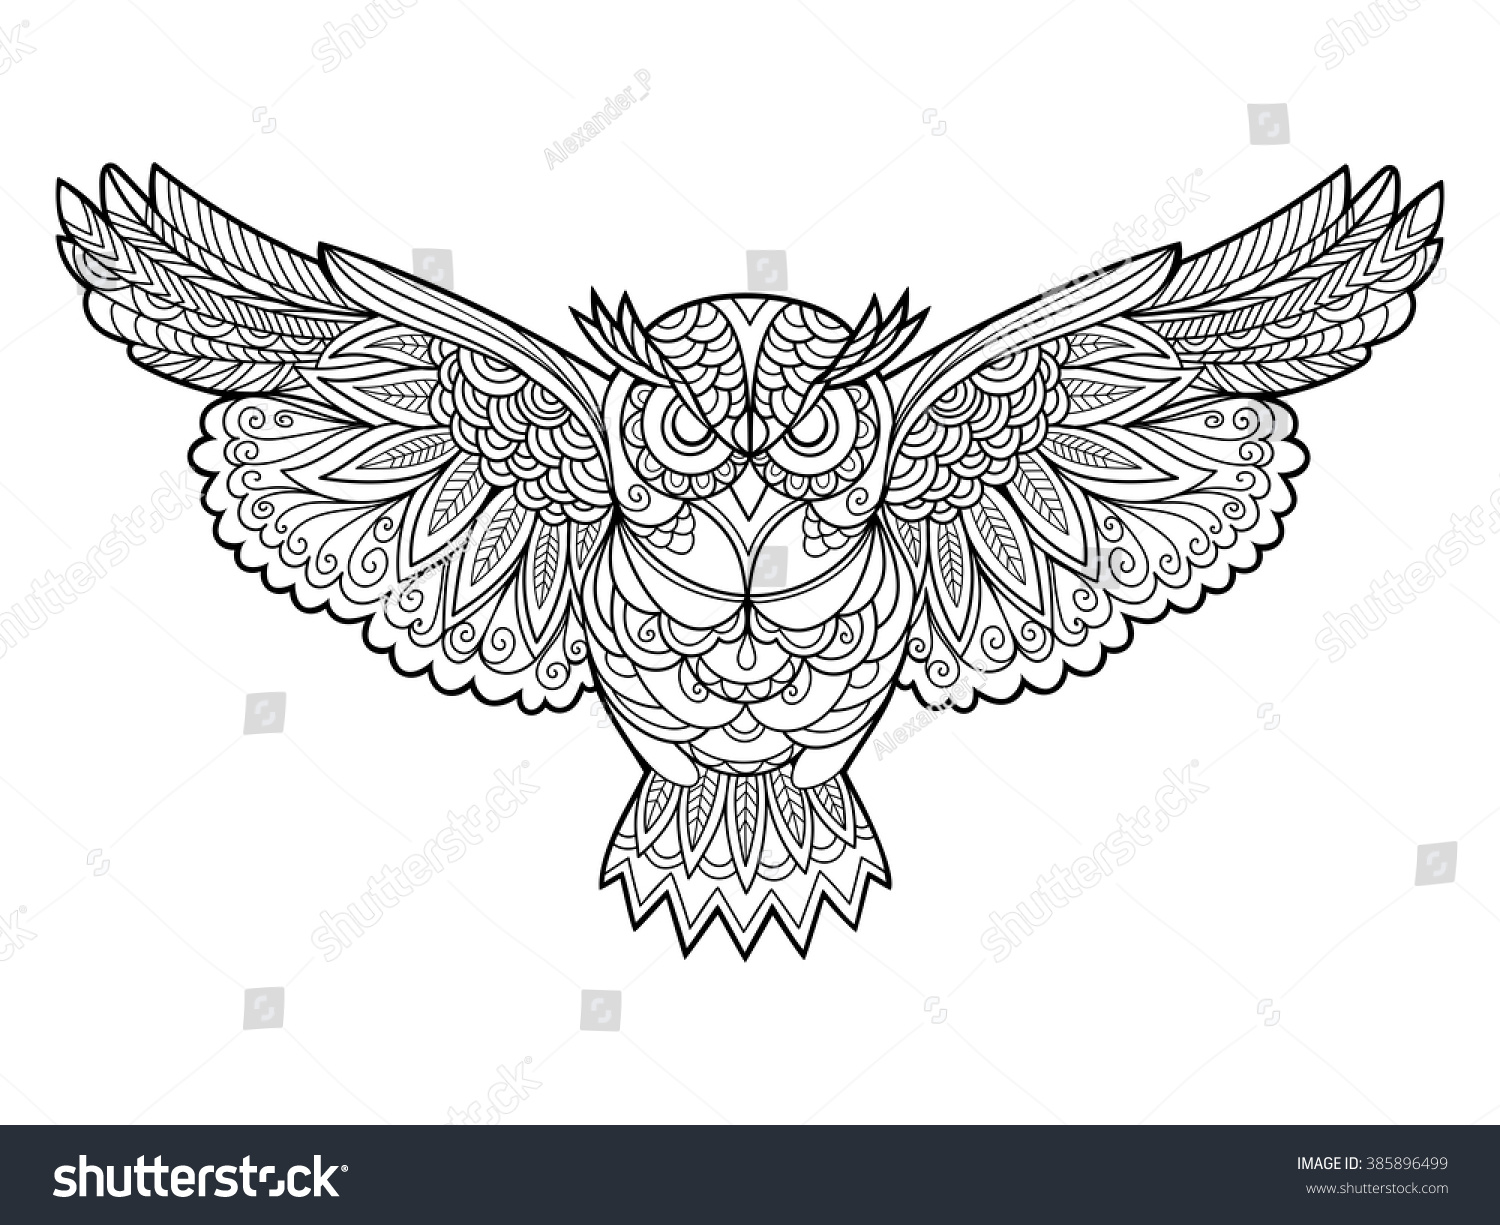 The stress coloring book - Owl Bird Coloring Book For Adults Vector Illustration Anti Stress Coloring For Adult